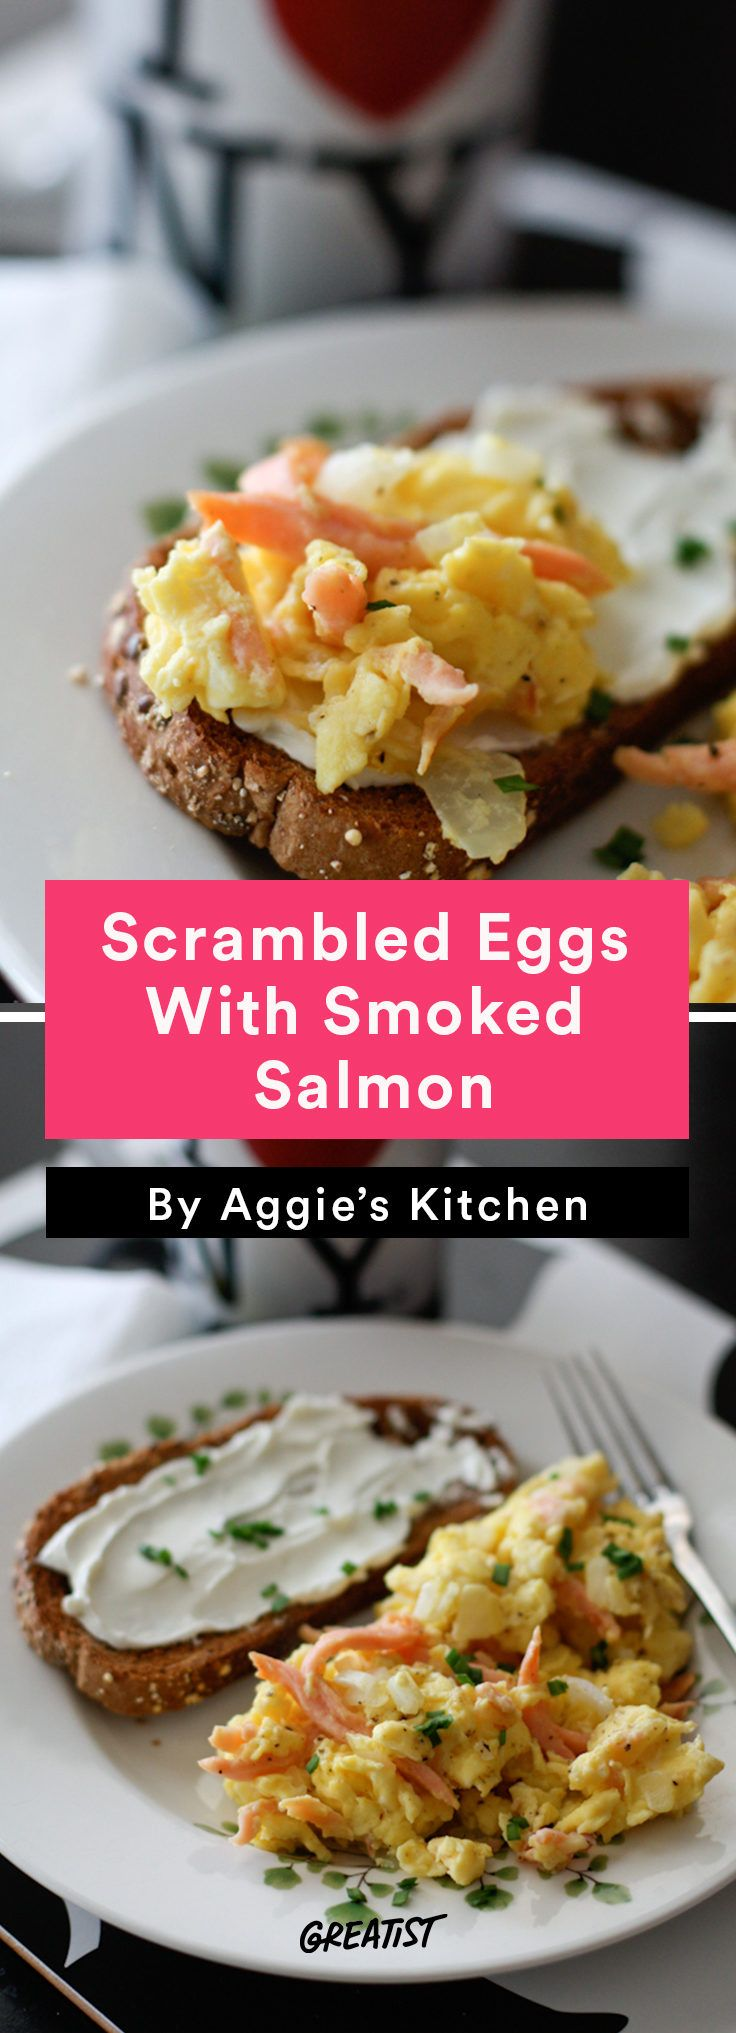 4. Scrambled Eggs With Smoked Salmon #Greatist http://greatist.com/eat/scrambled-egg-recipes-to-keep-breakfast-interesting